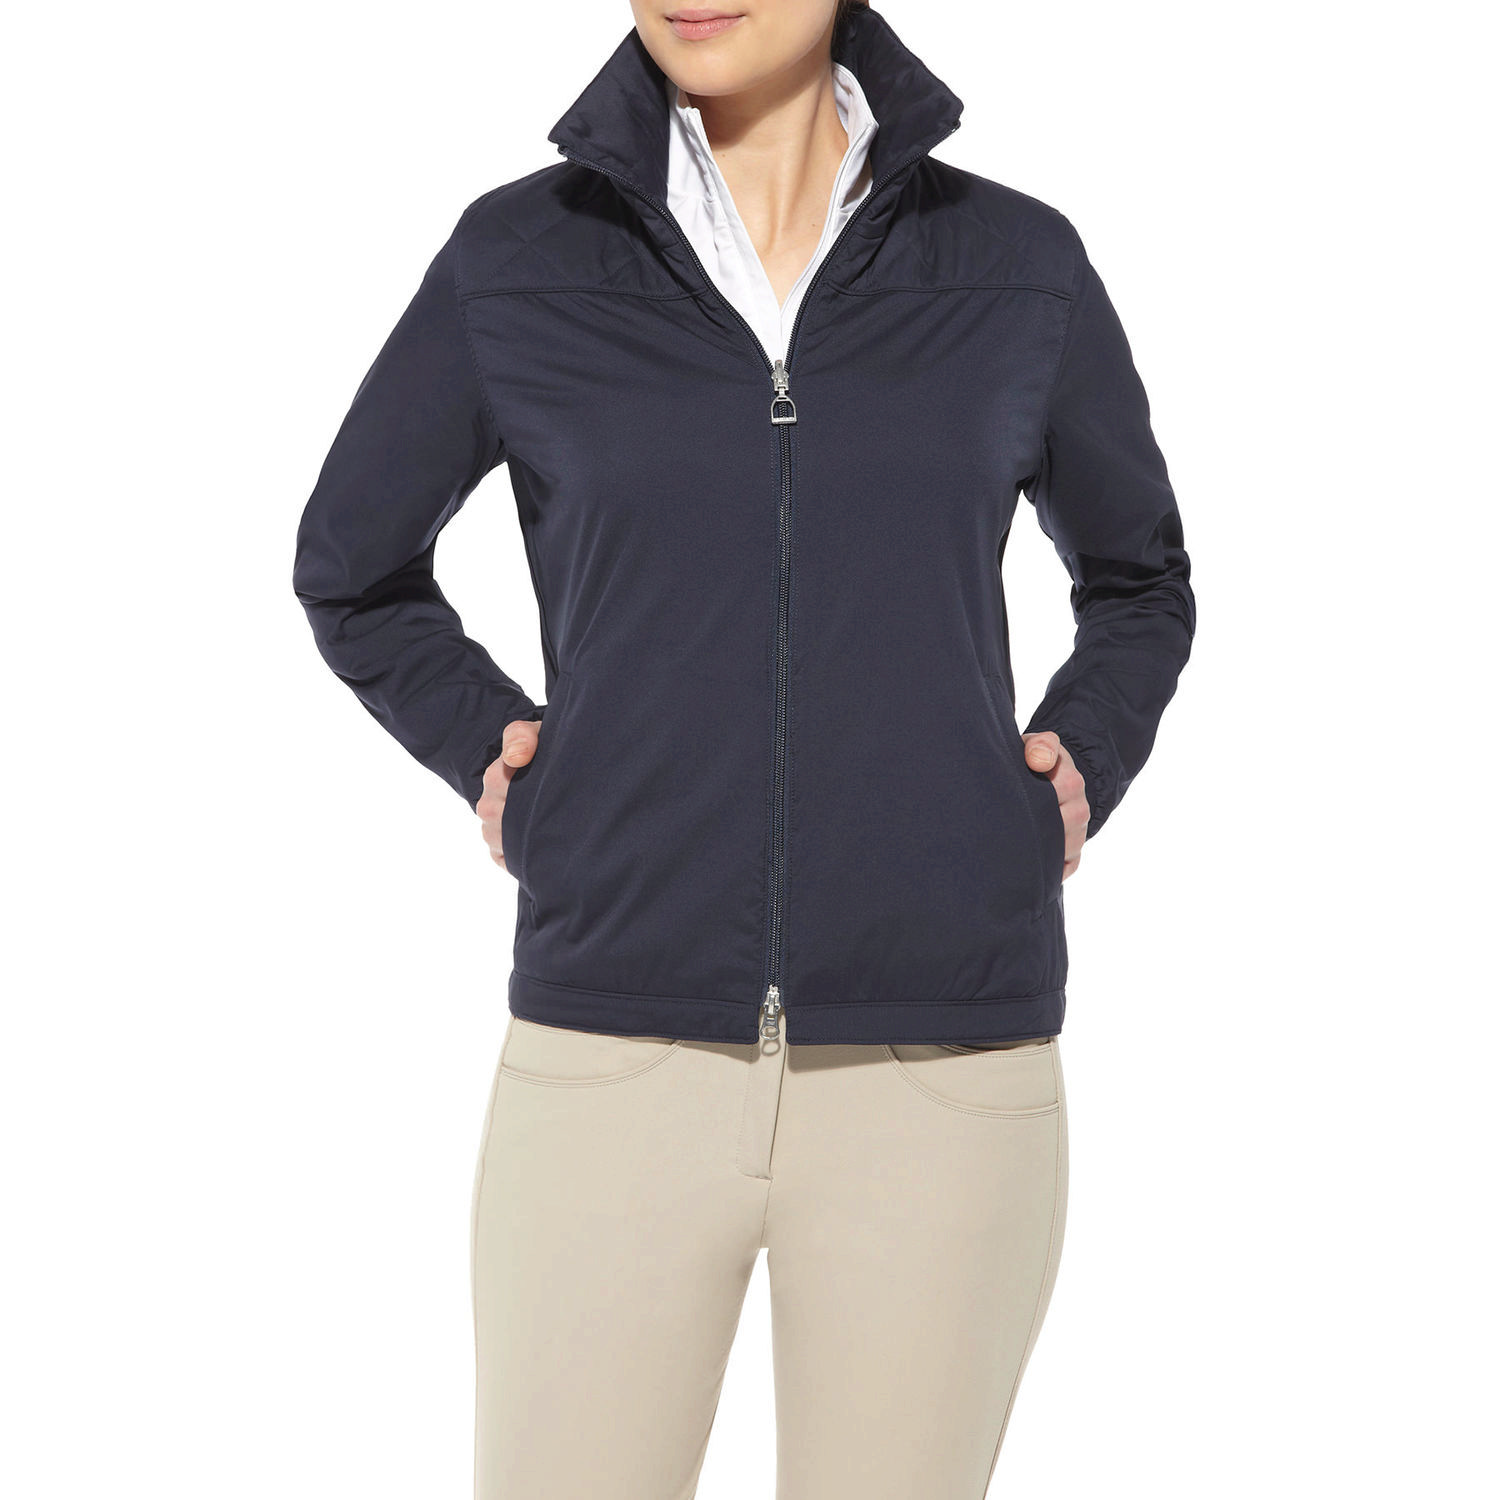 ARIAT Women's Cyprus Fleece Jacket